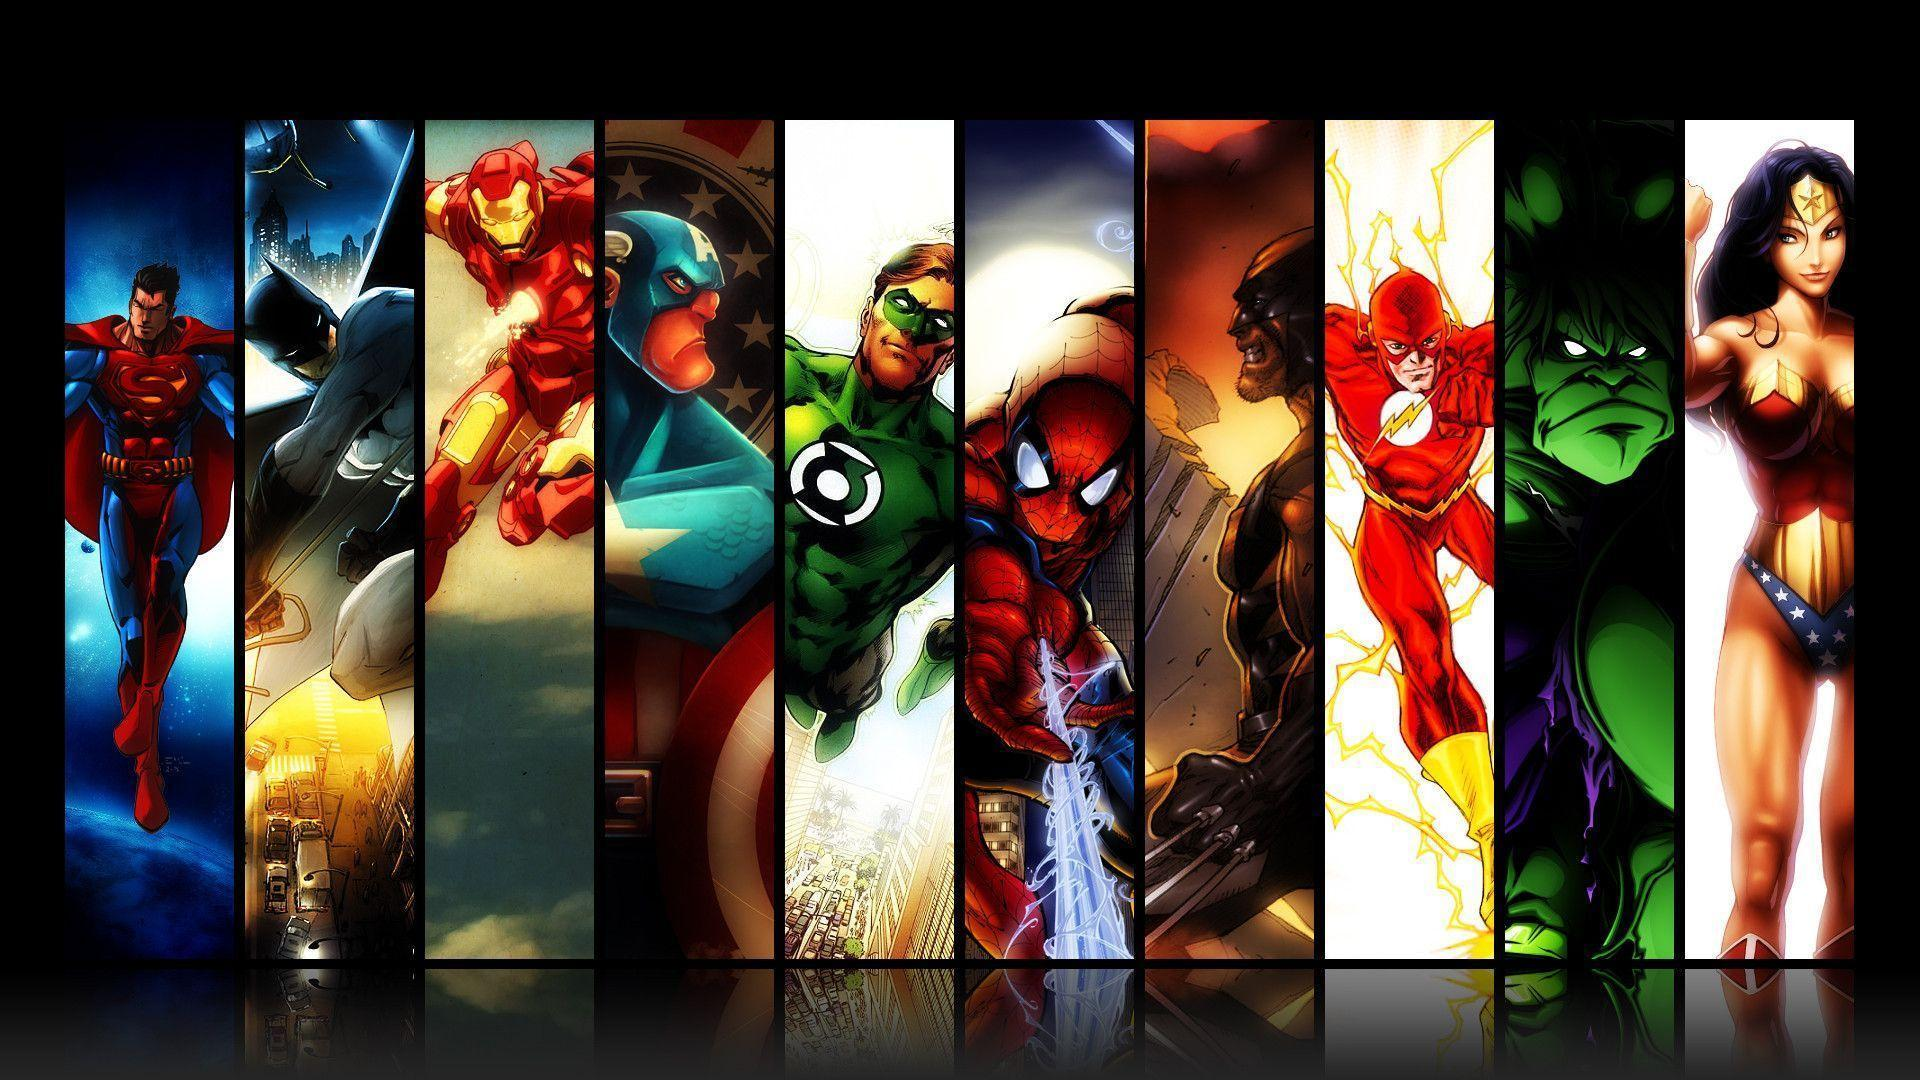 Free superhero wallpapers wallpaper cave - Superhero iphone wallpaper hd ...